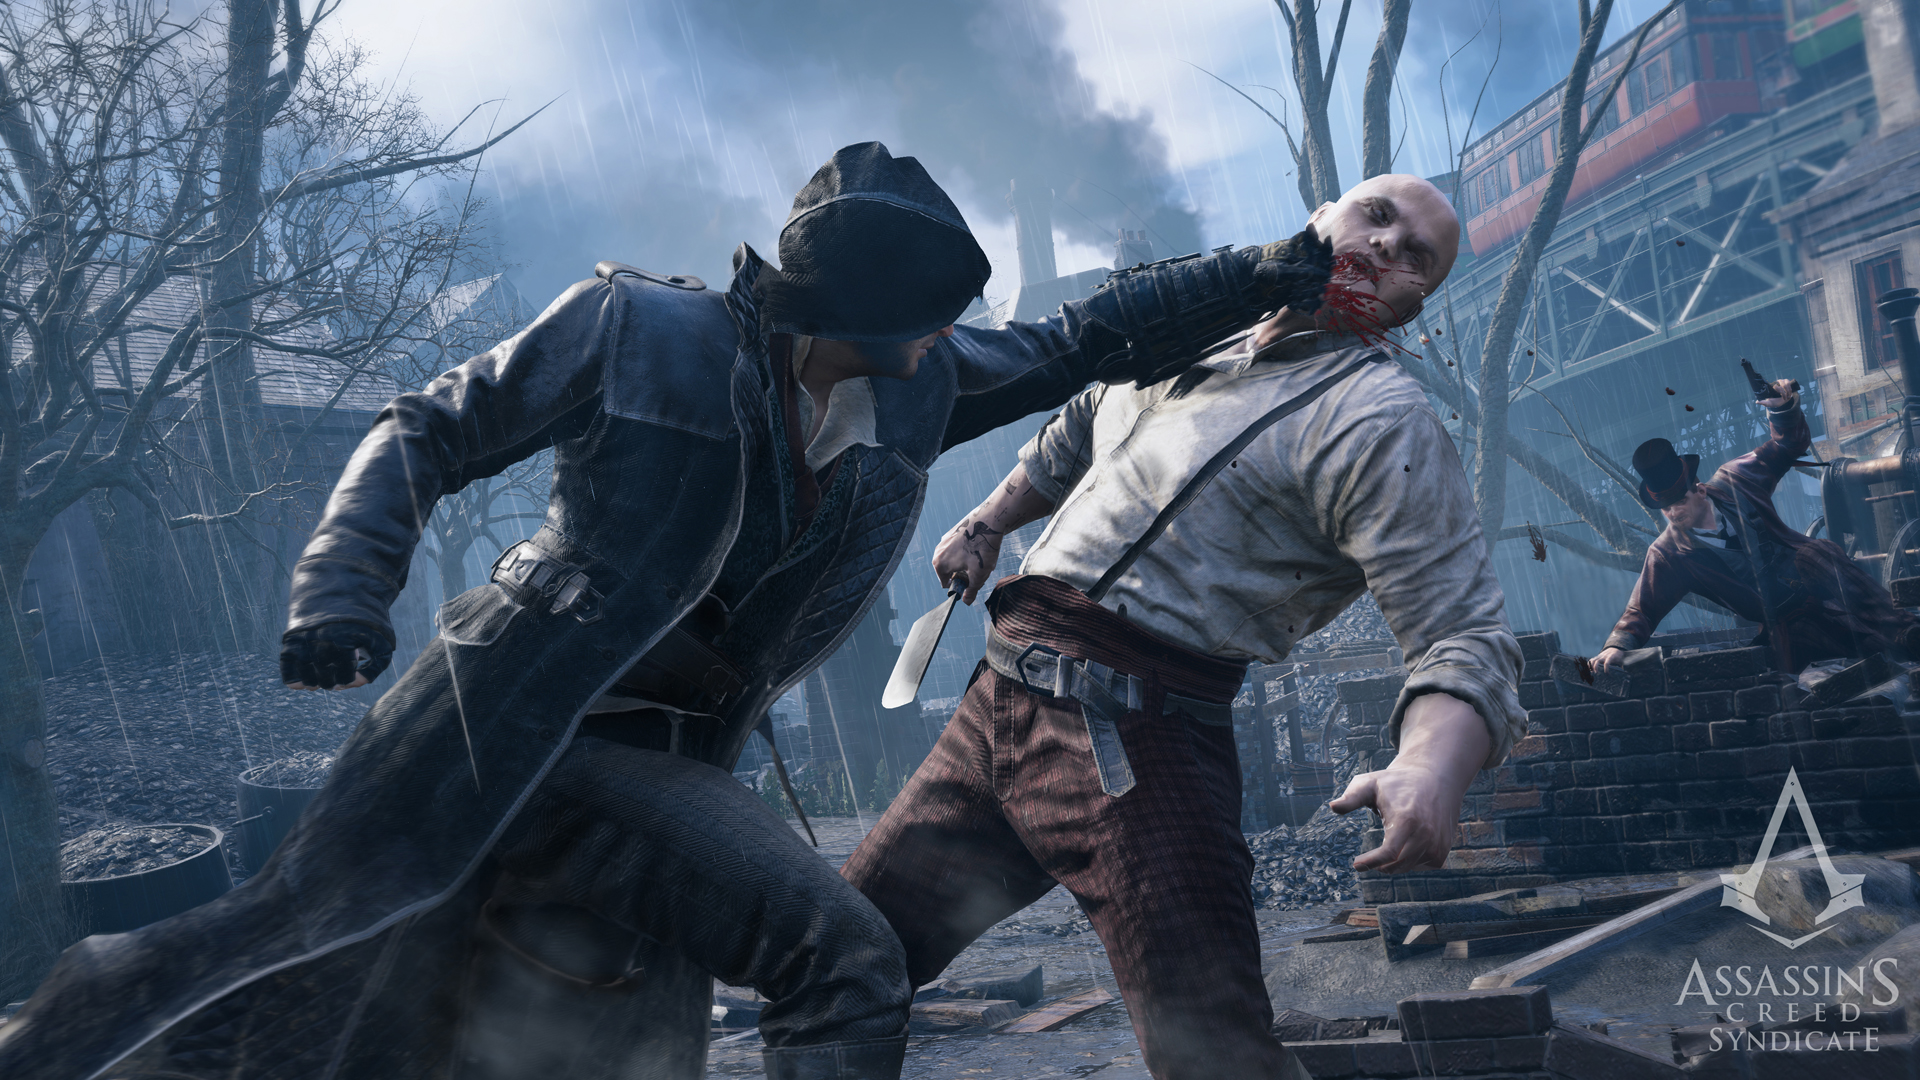 Assassin's Creed Syndicate image 2